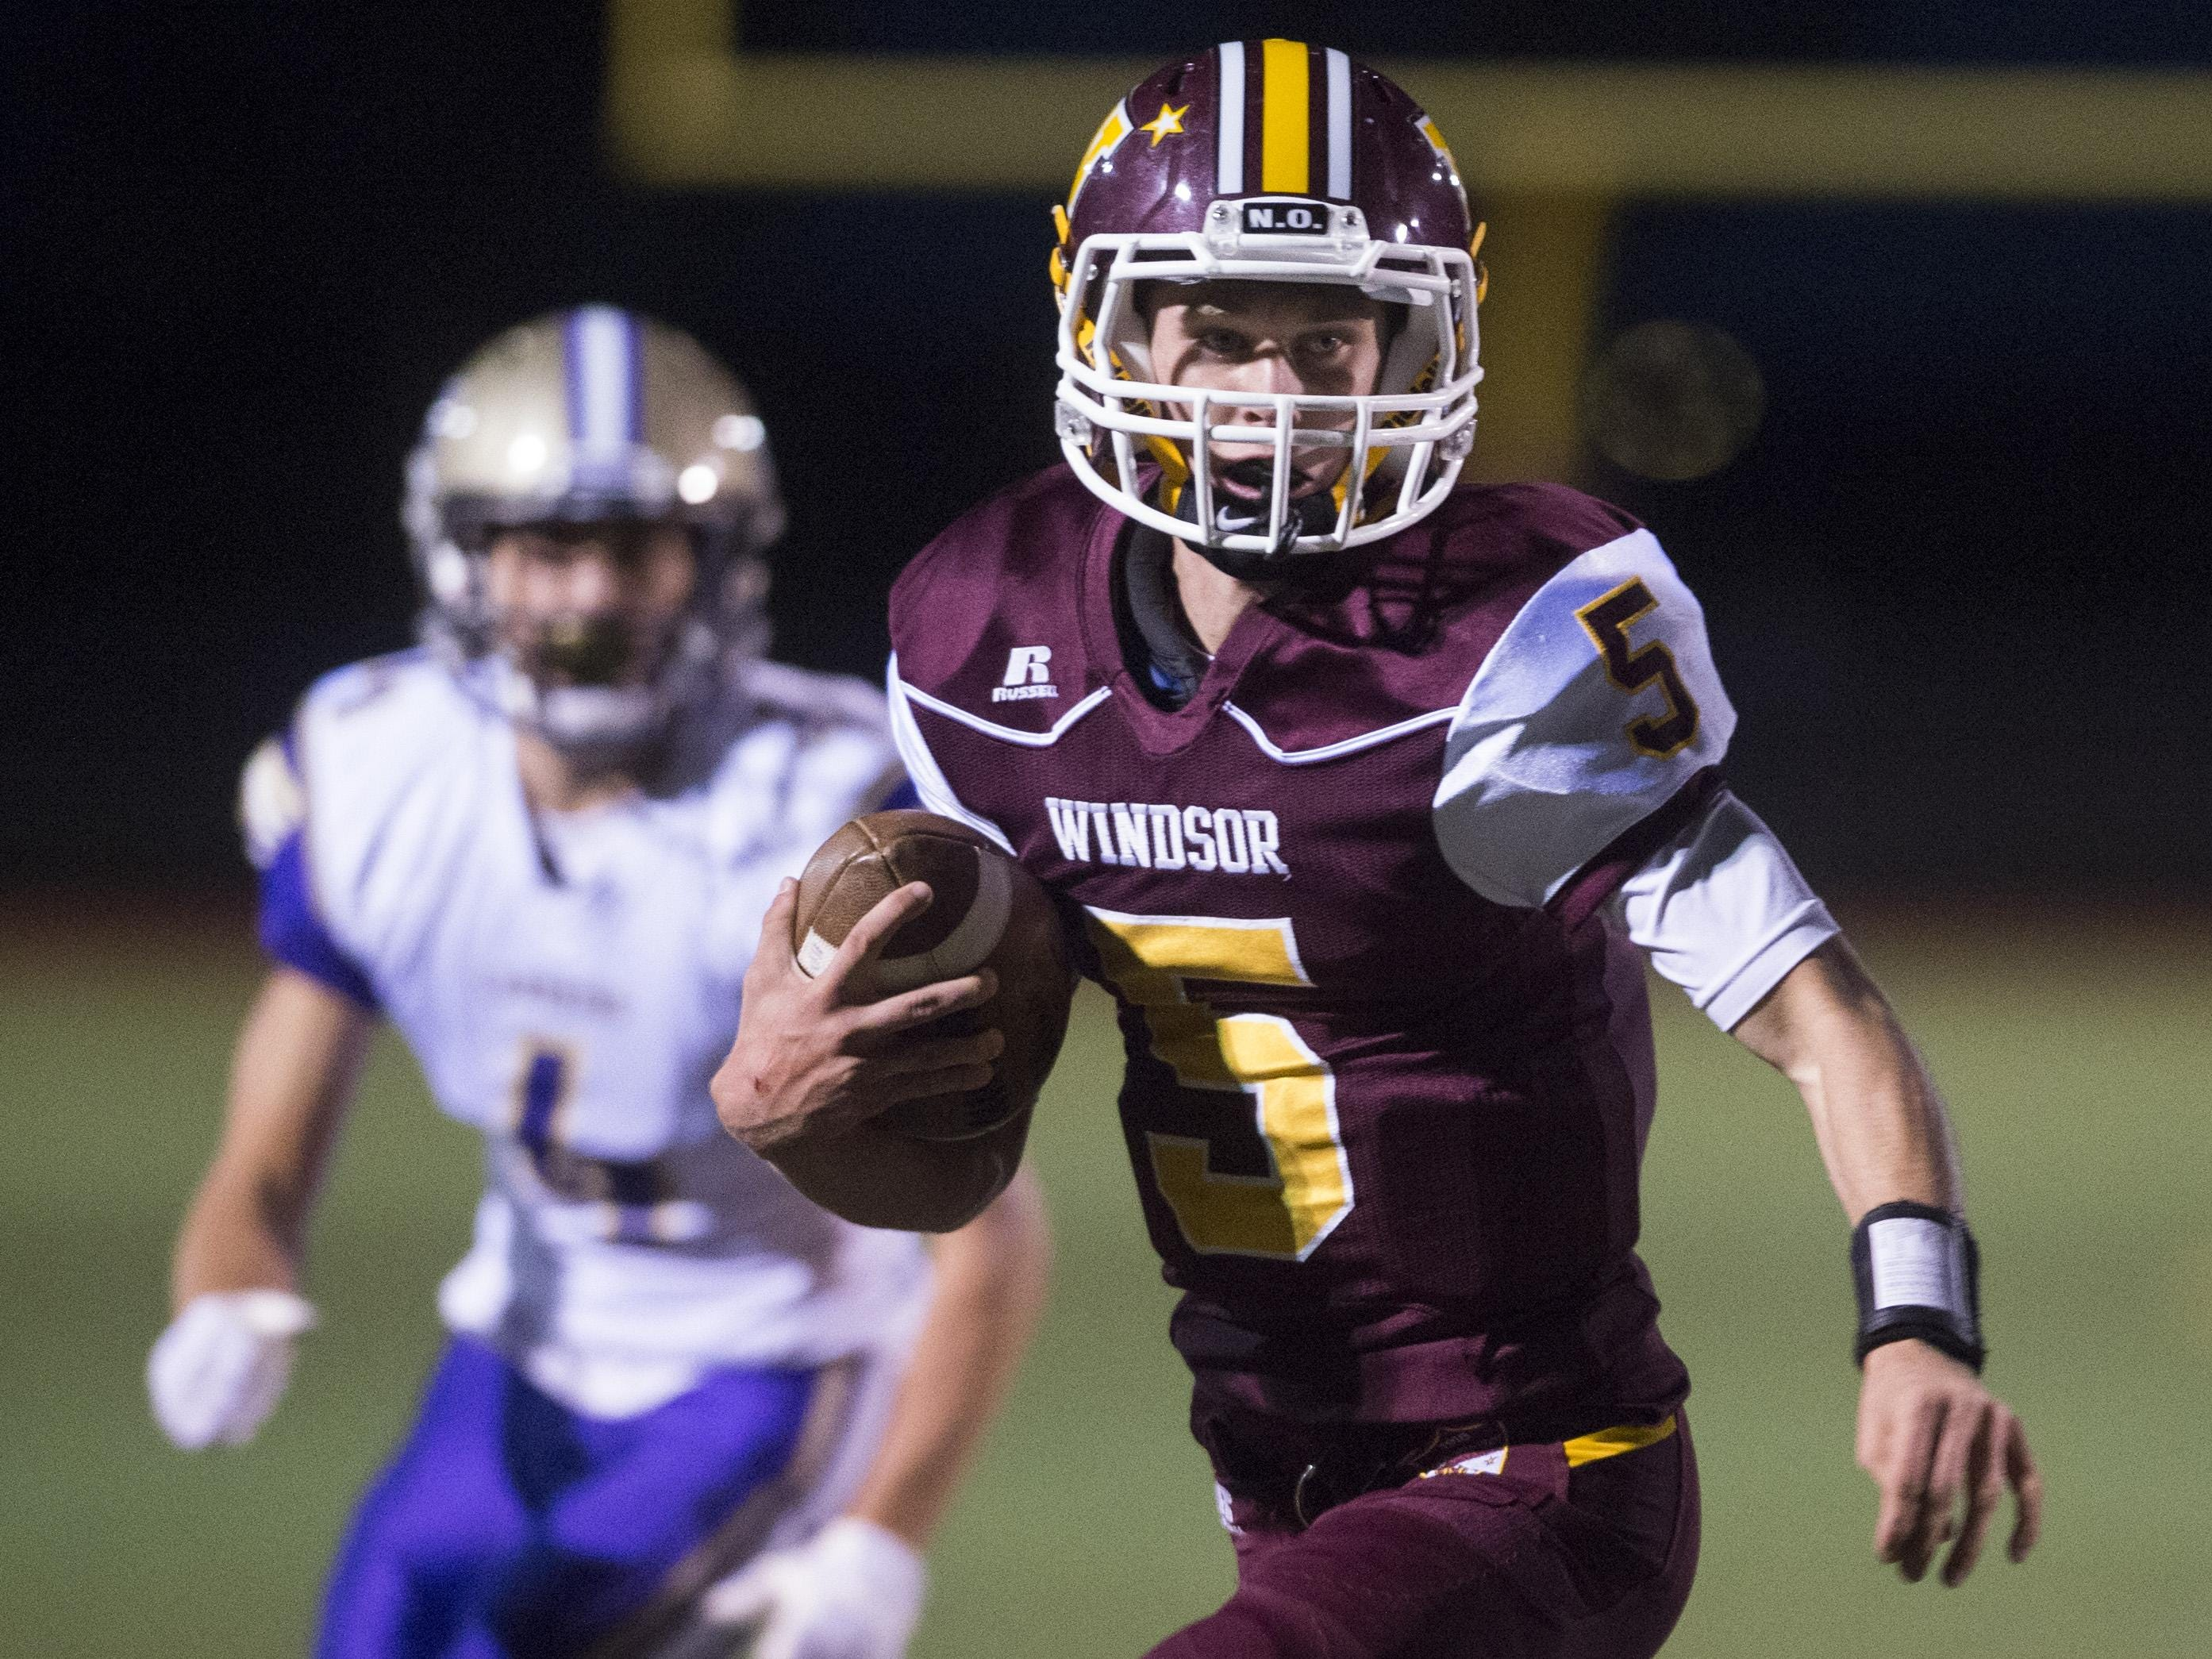 Windsor High School quarterback Brad Peeples is the second leading rusher in the area with 485 yards in four games.